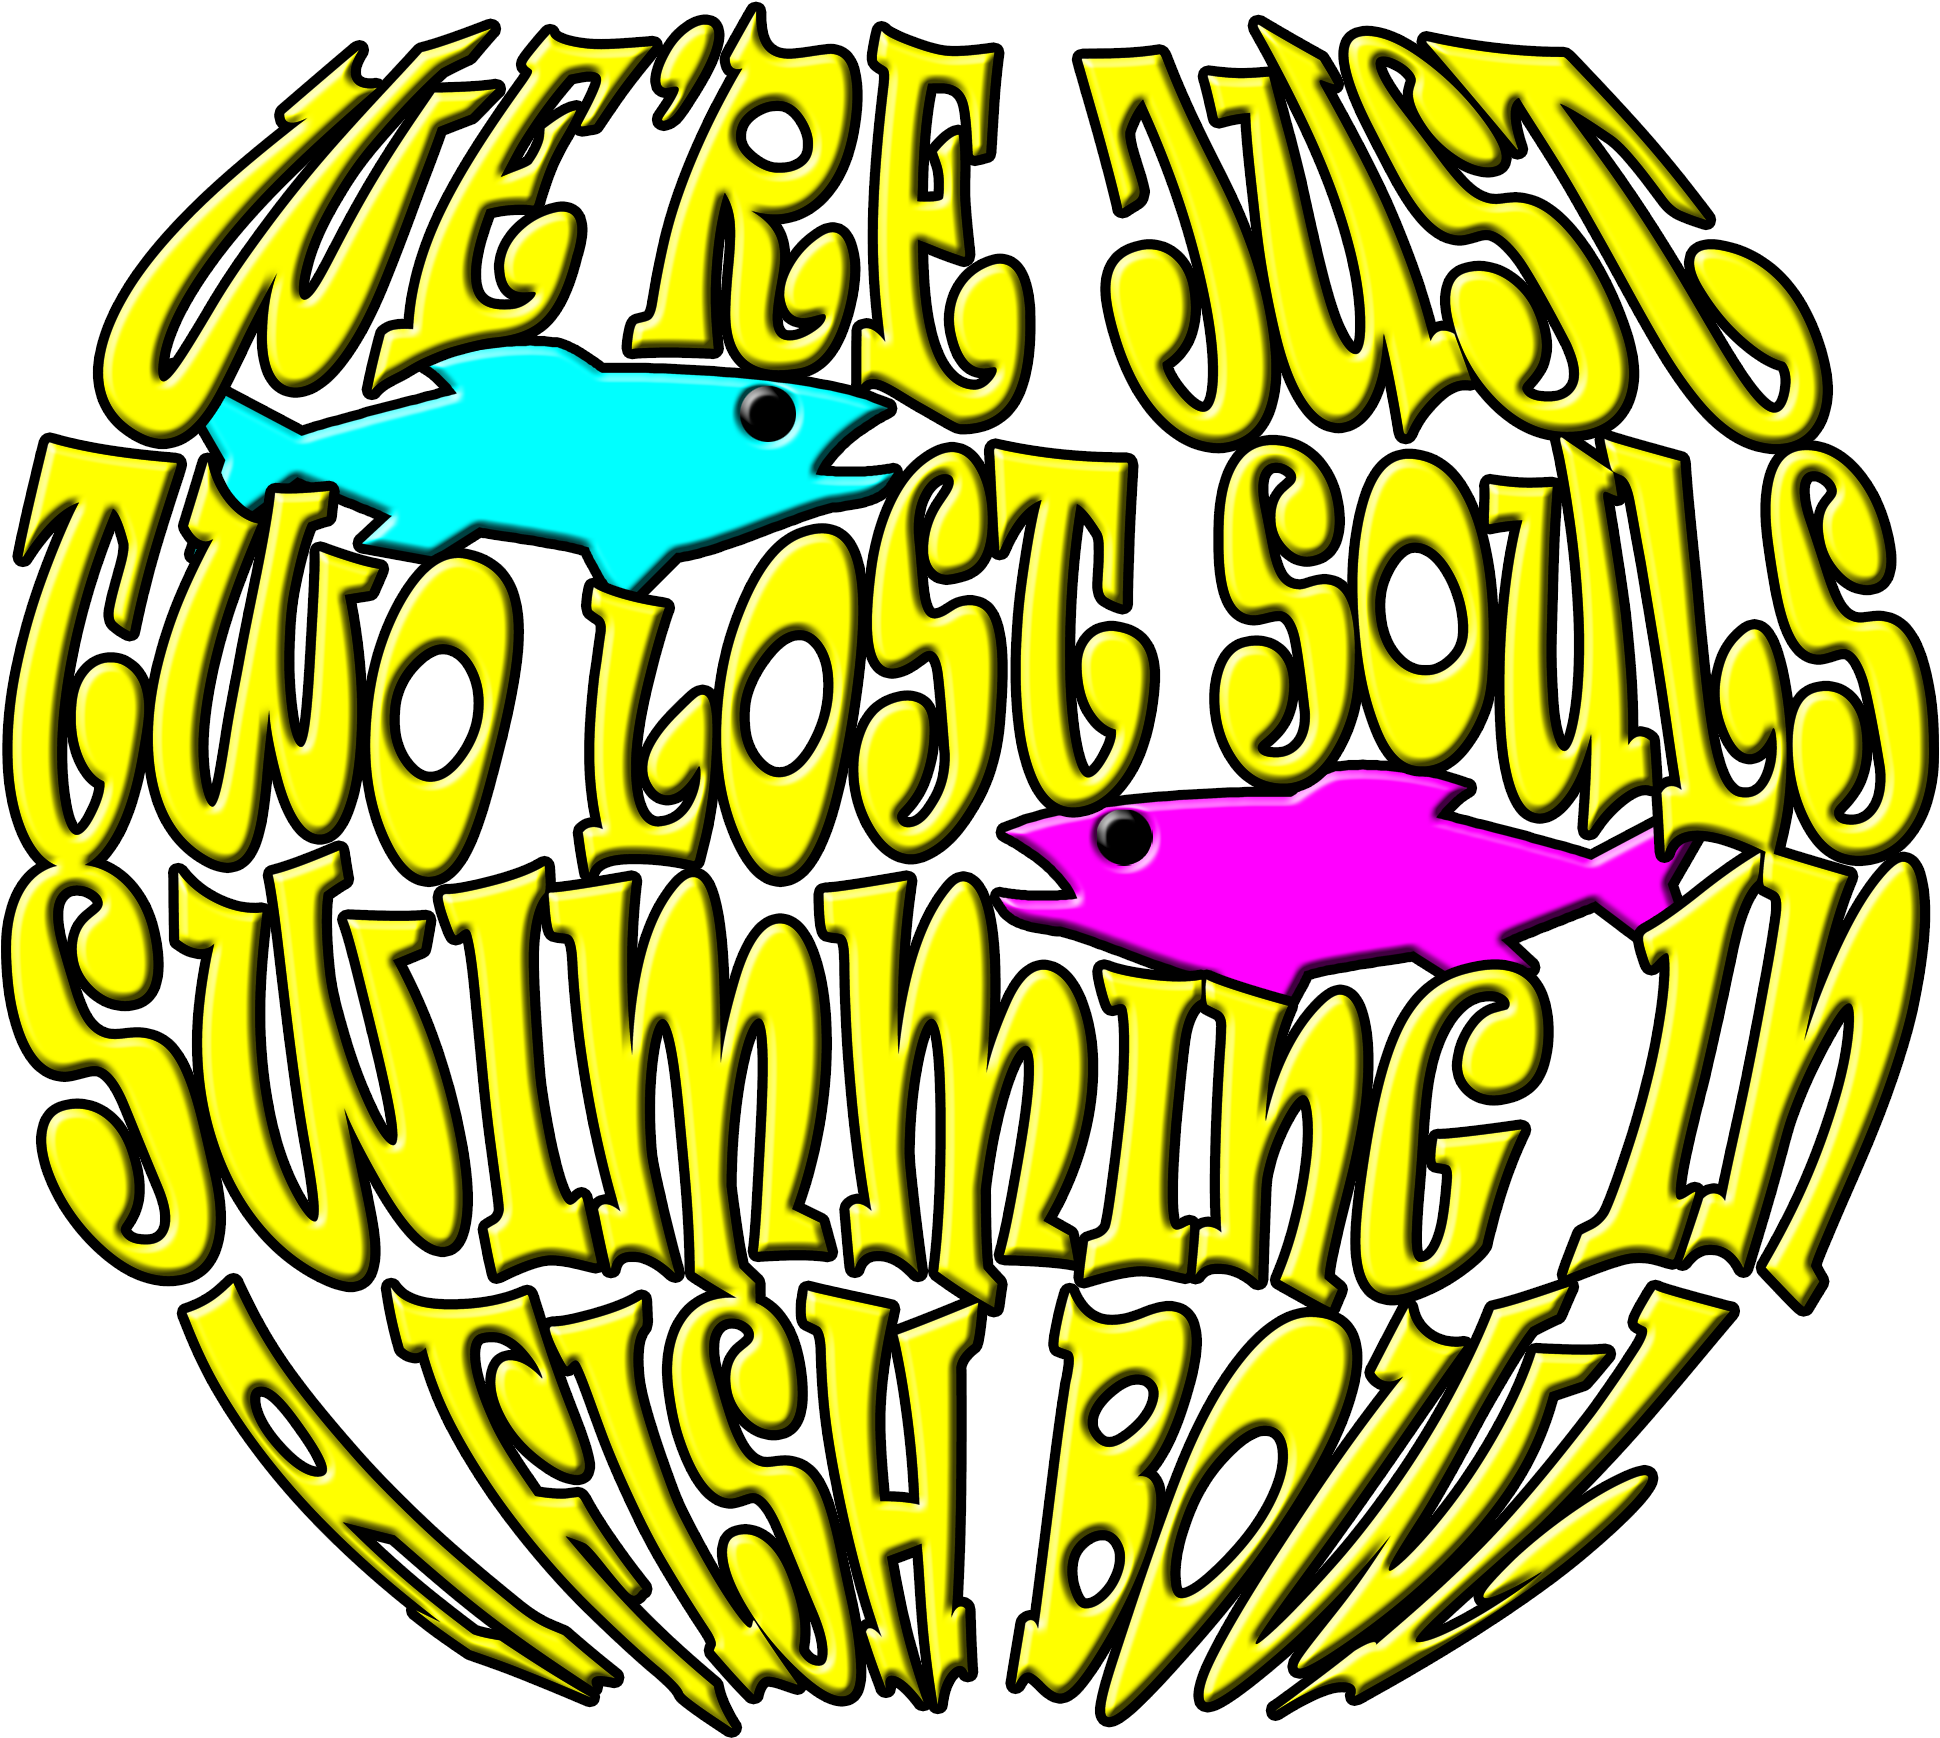 We re just two. Fishbowl clipart fish swimming